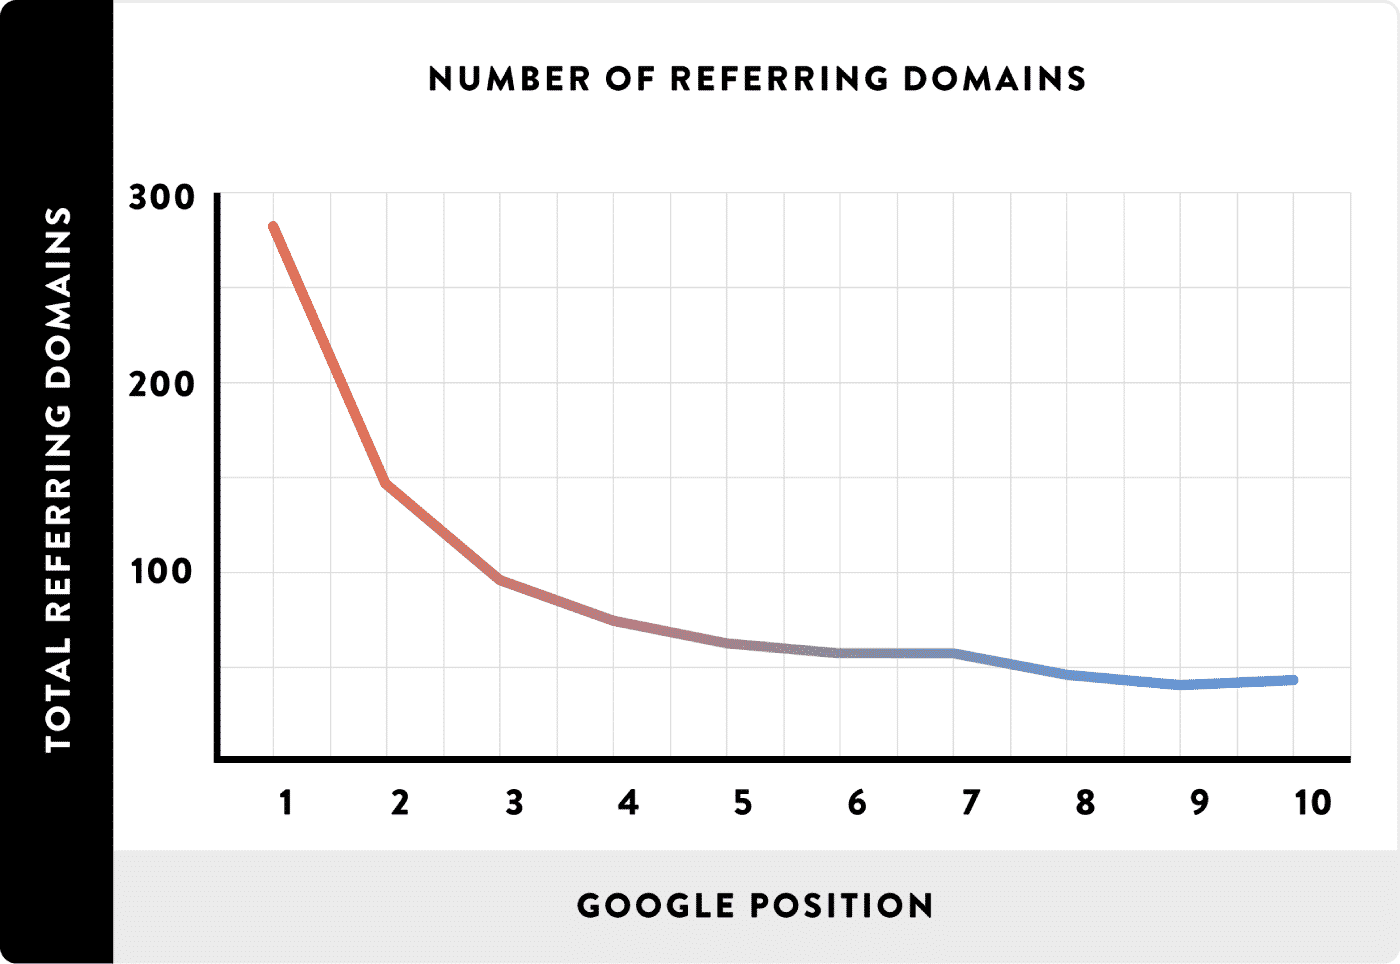 ۷_۳_number-of-referring-domains